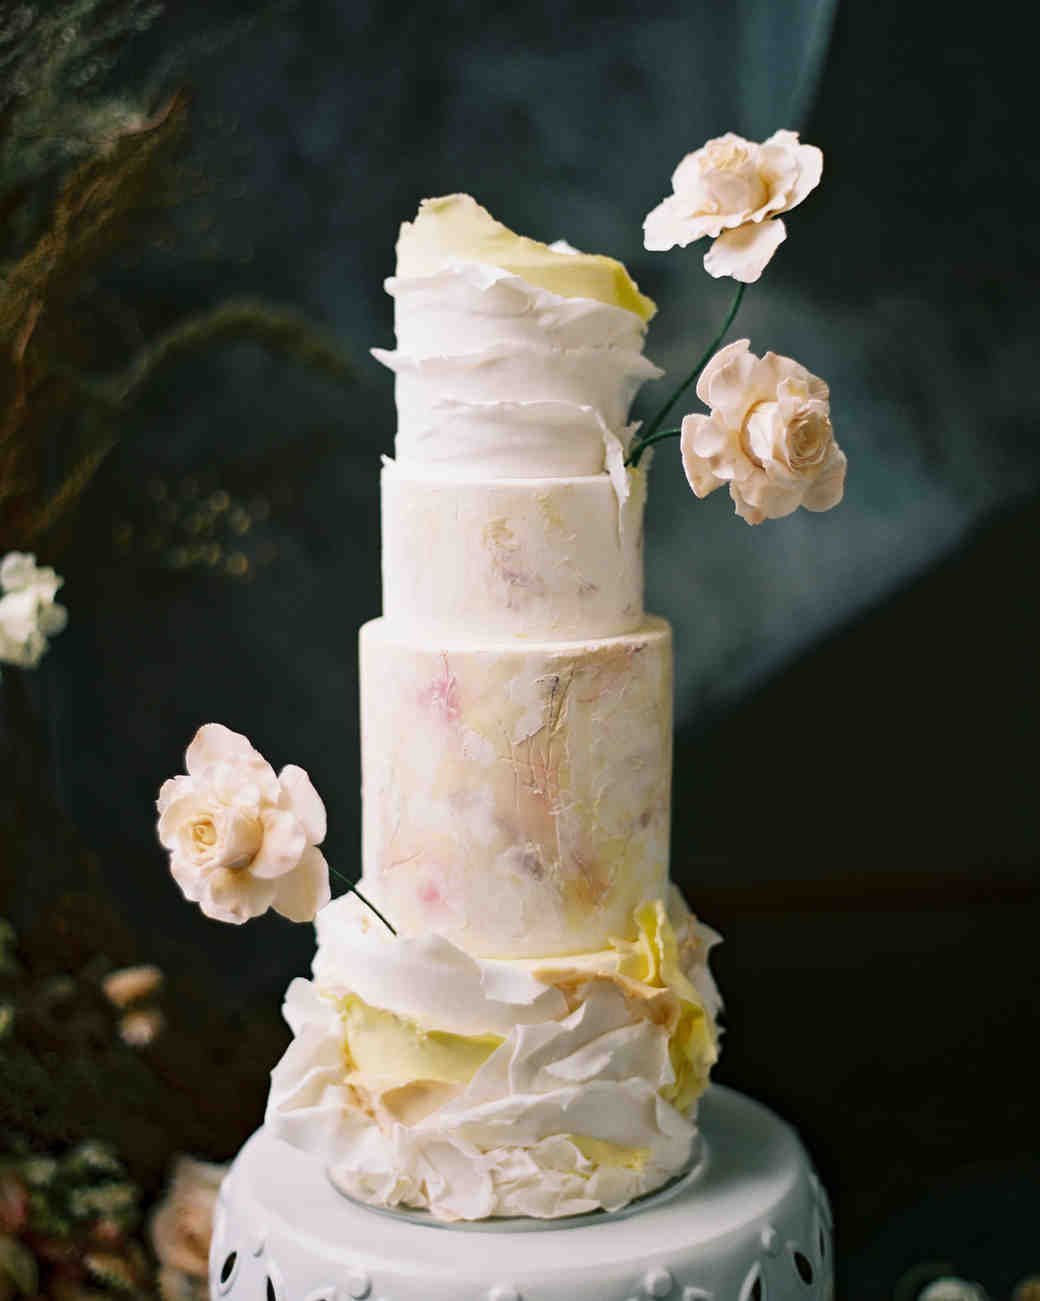 four-tiered cake with sugar flowers and buttercream